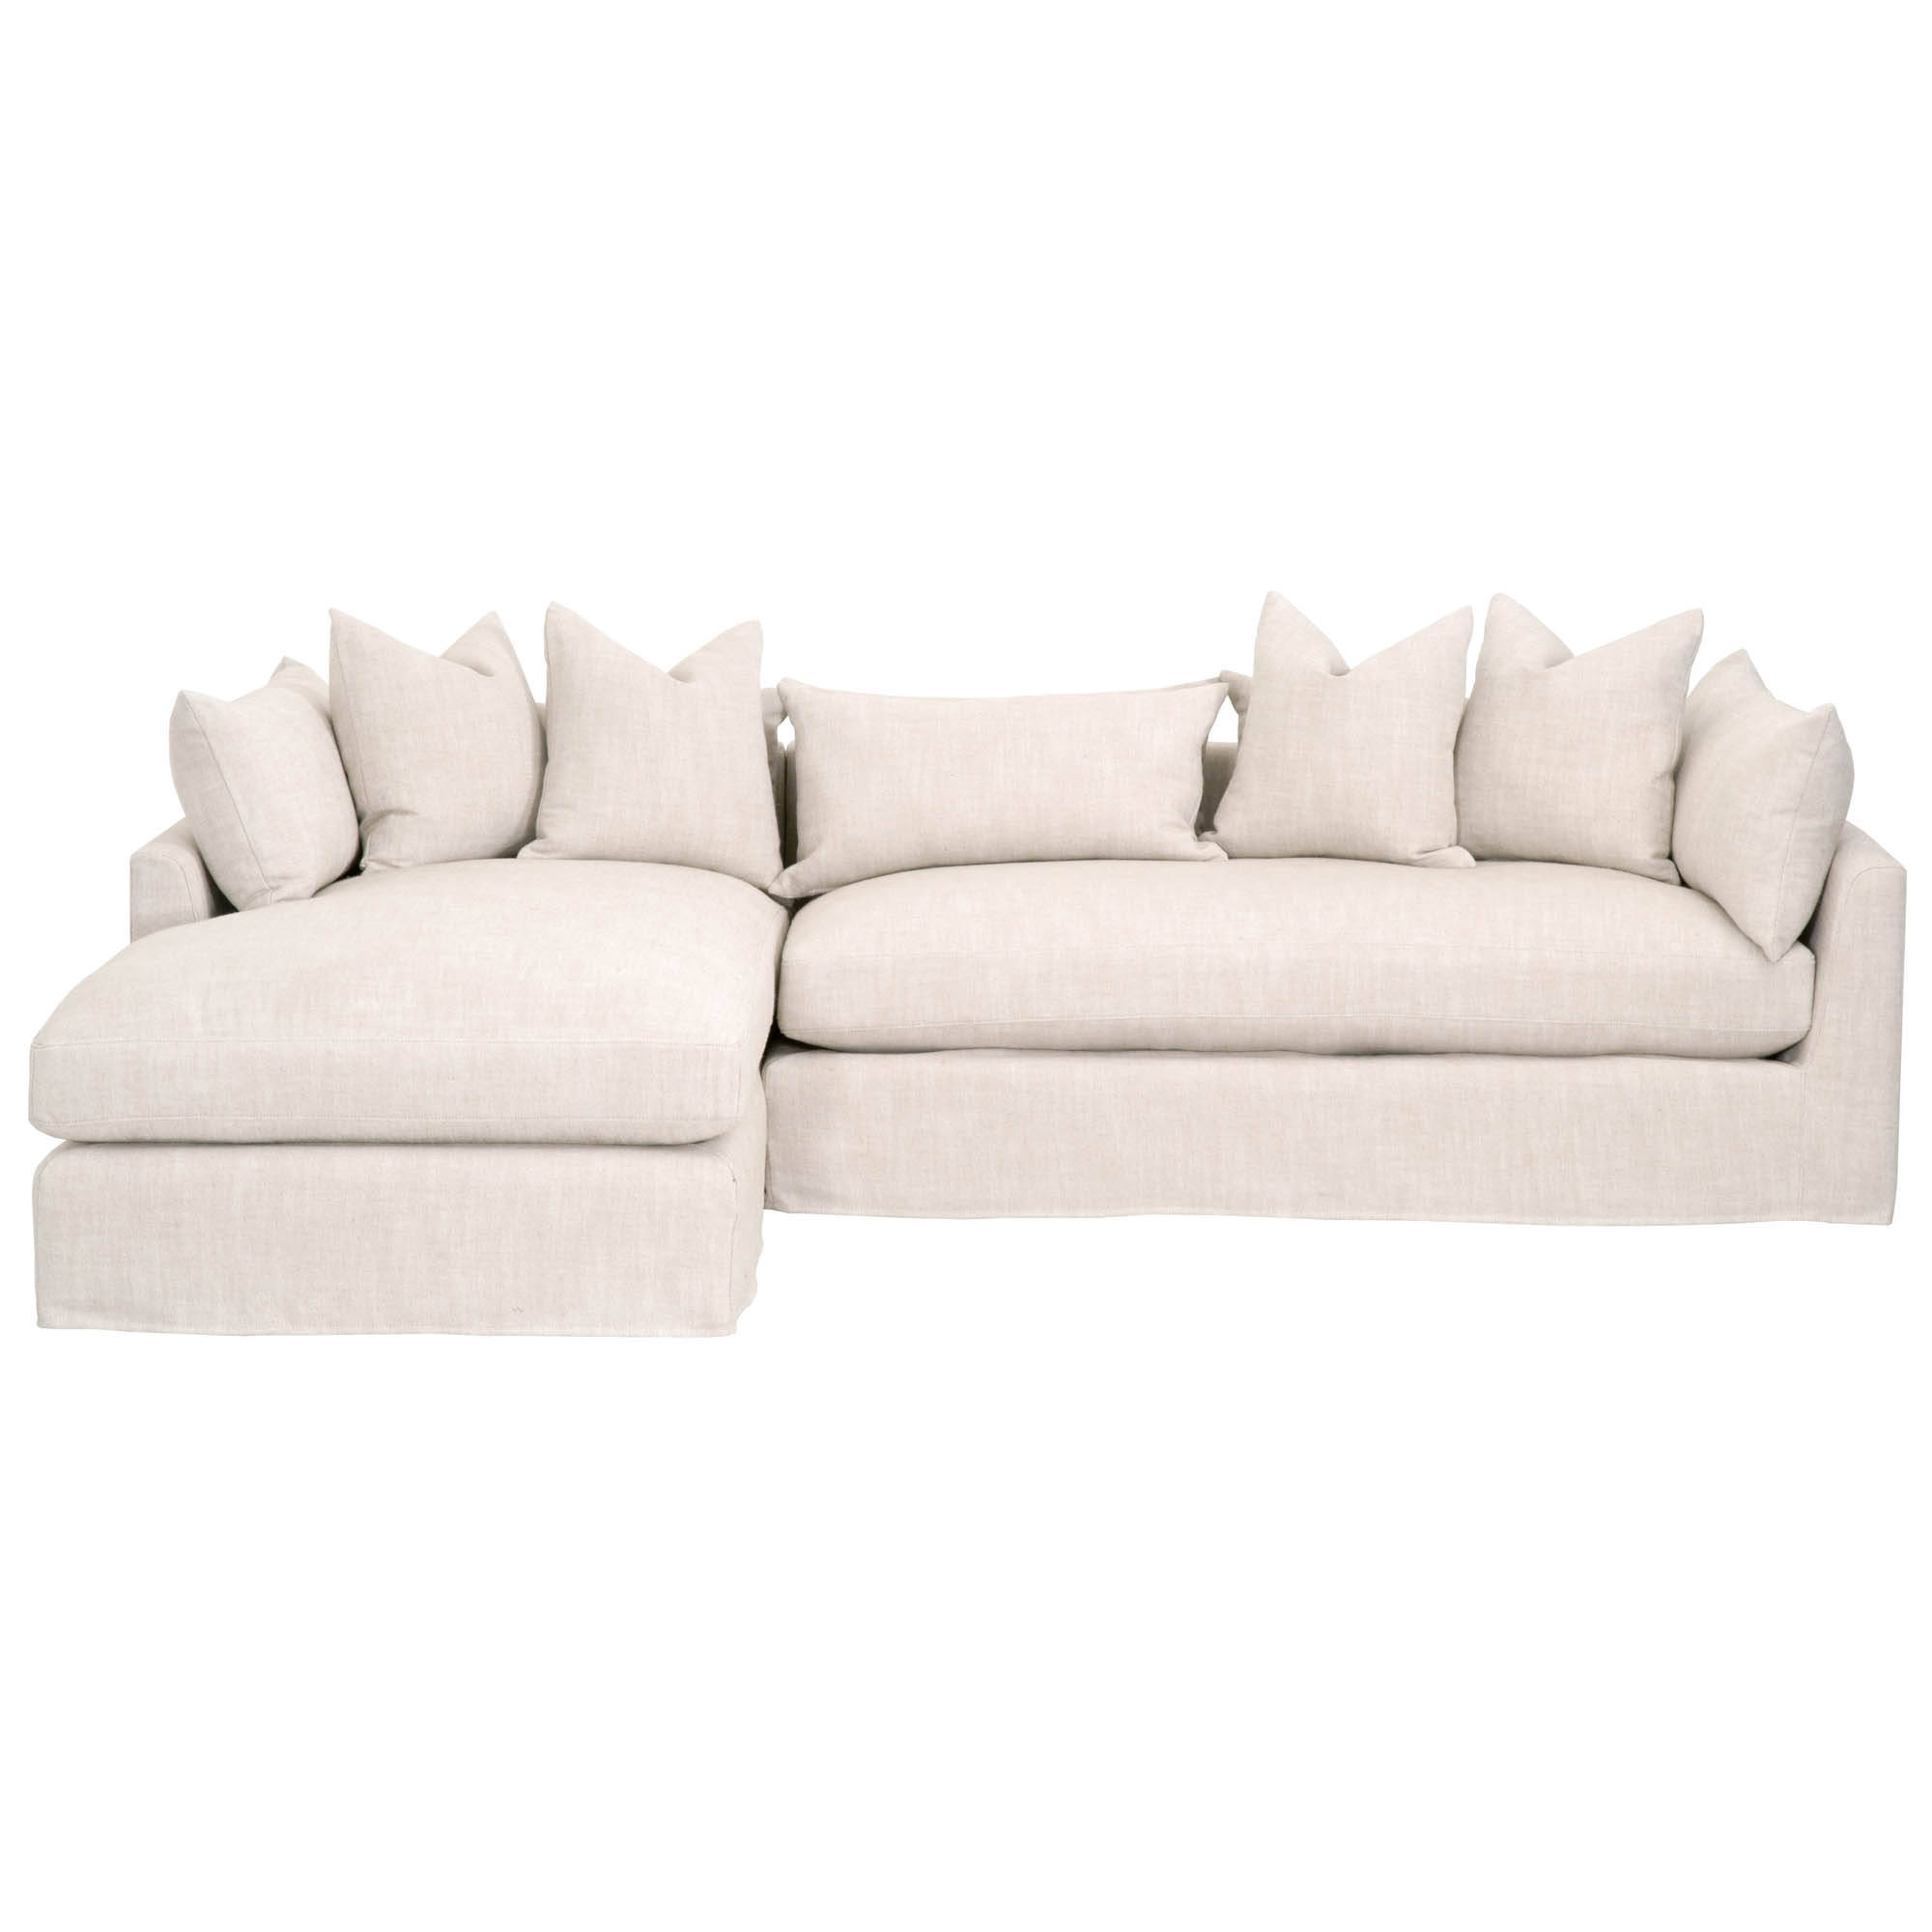 Awe Inspiring Essentials For Living Haven Bisque Espresso 110 Inch Laf Sectional Pabps2019 Chair Design Images Pabps2019Com